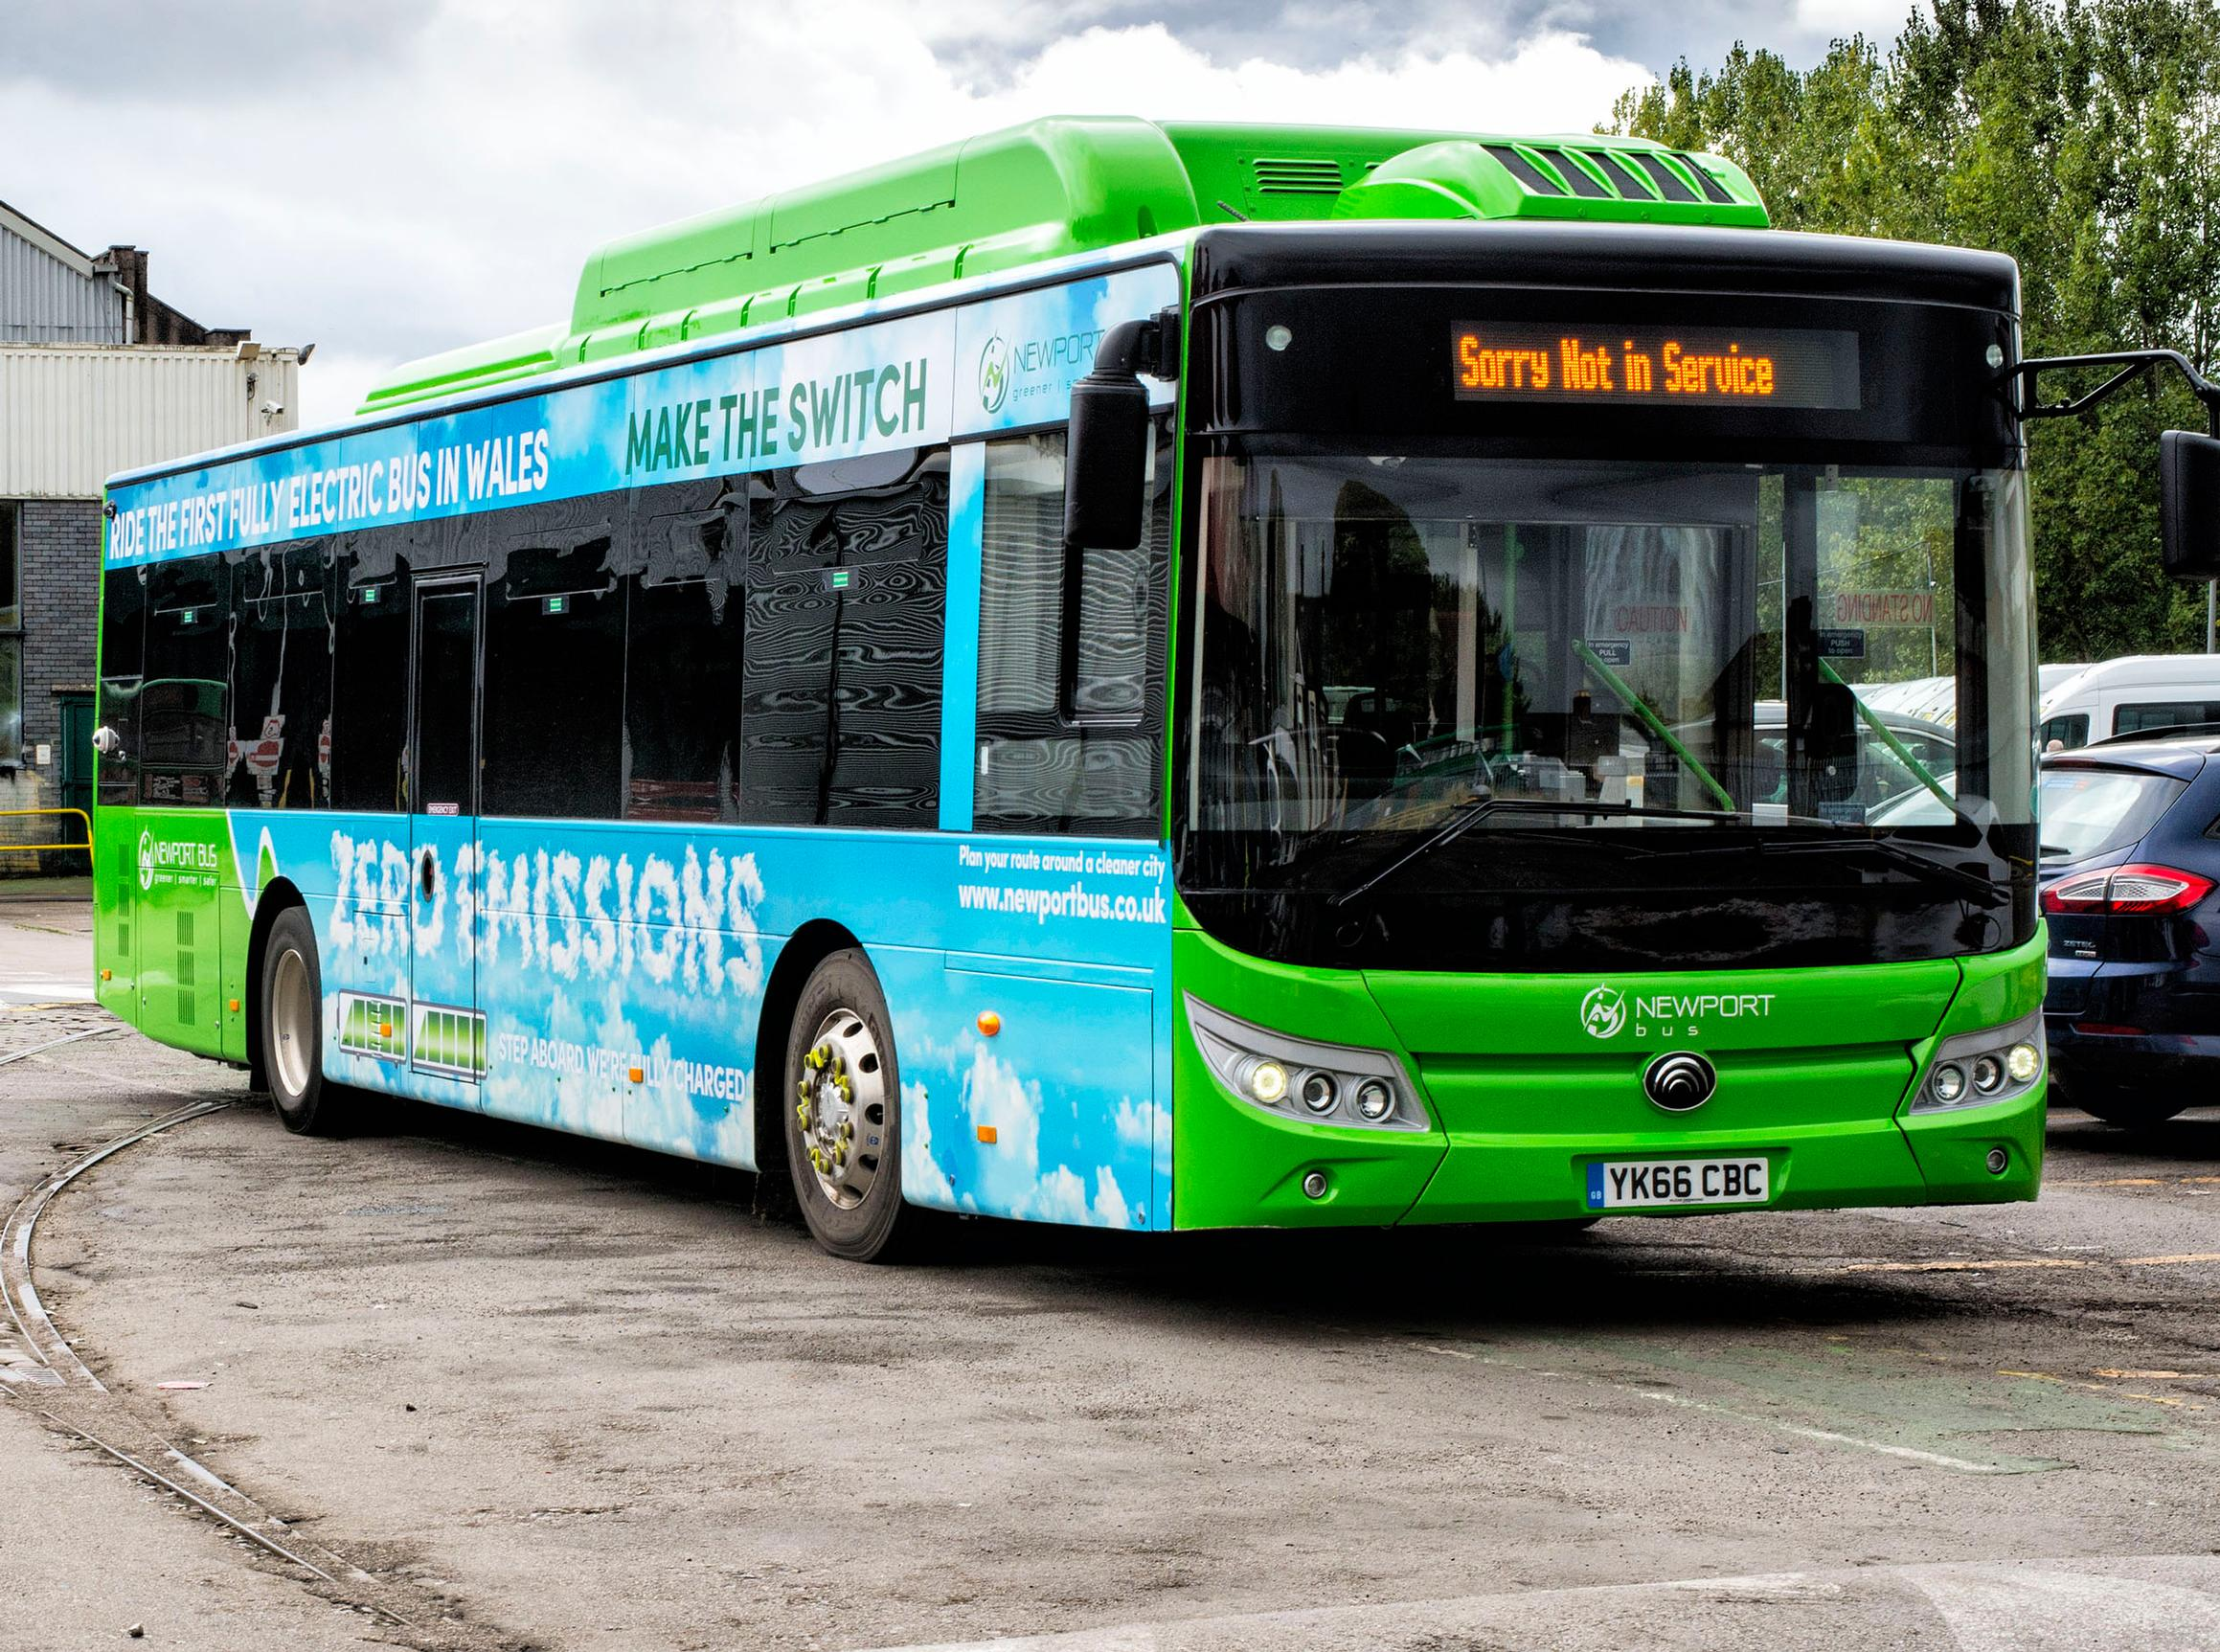 Newport Bus has taken delivery of the first electric buses in Wales